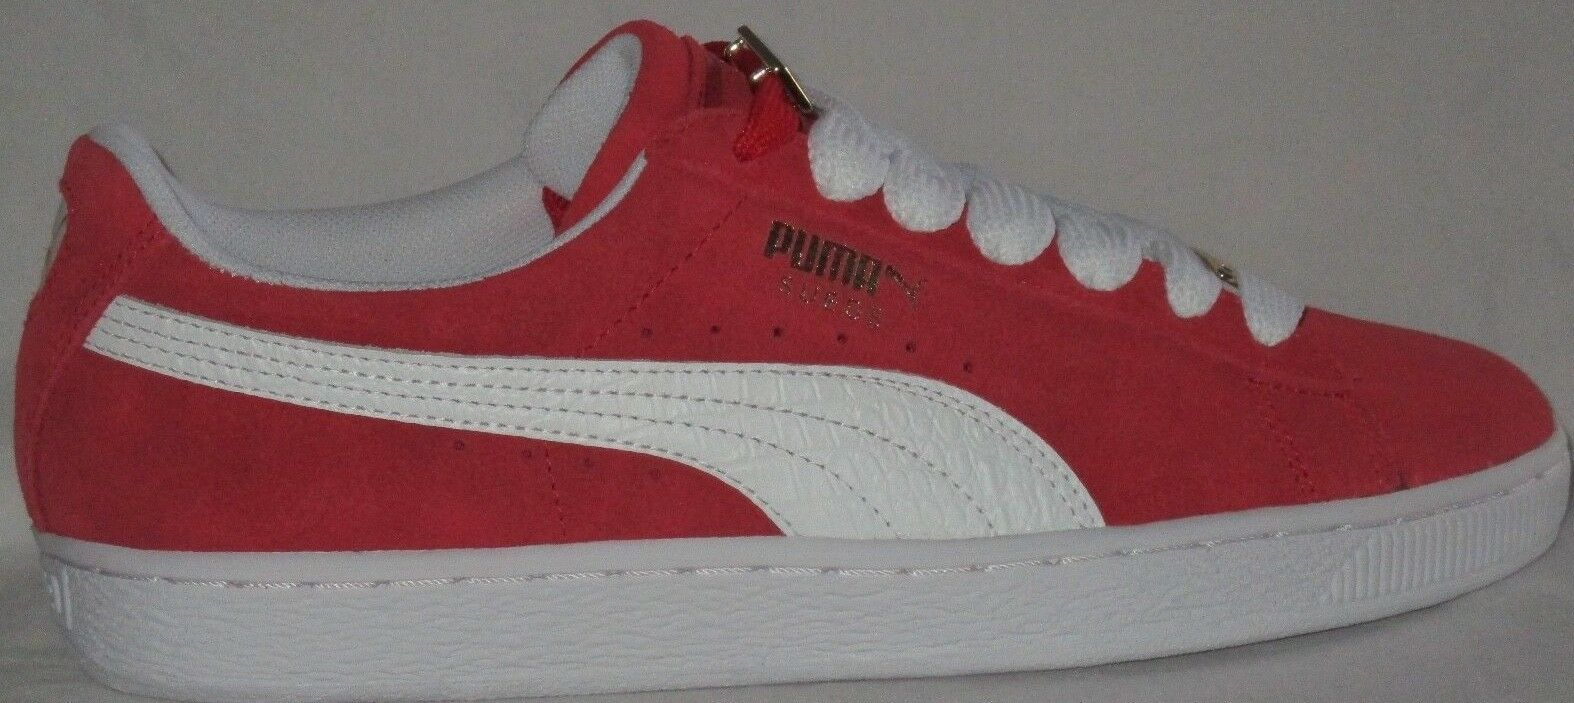 MEN'S PUMA SUEDE CLASSIC BBOY FABULOUS 1968 FLAME SCARLET-WHITE SHOES SIZE 10